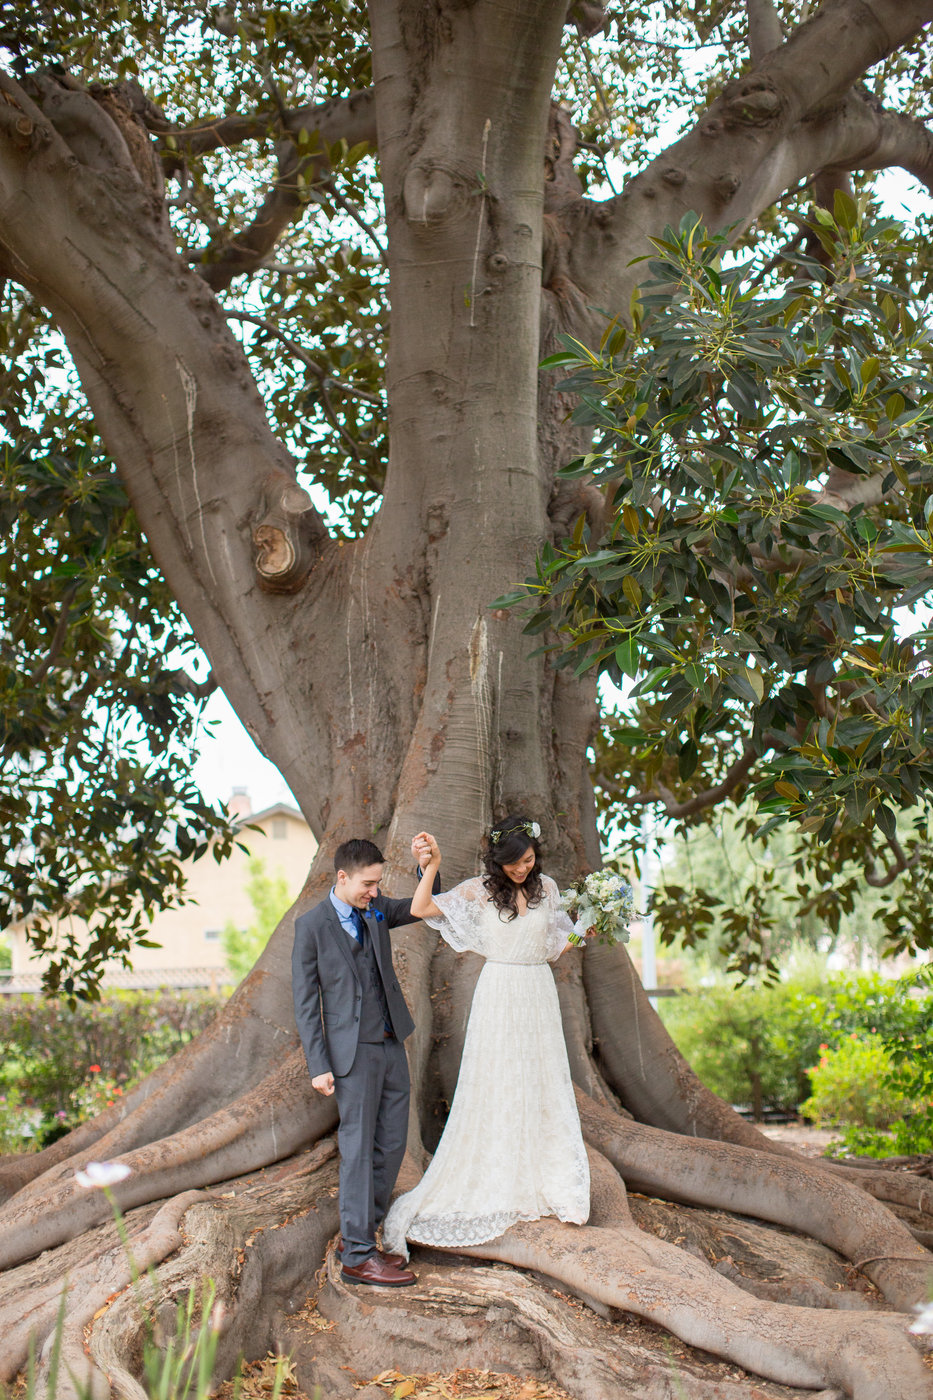 Shinn-Historic-Park-and-Arboretum-Fall-wedding-photos.jpg